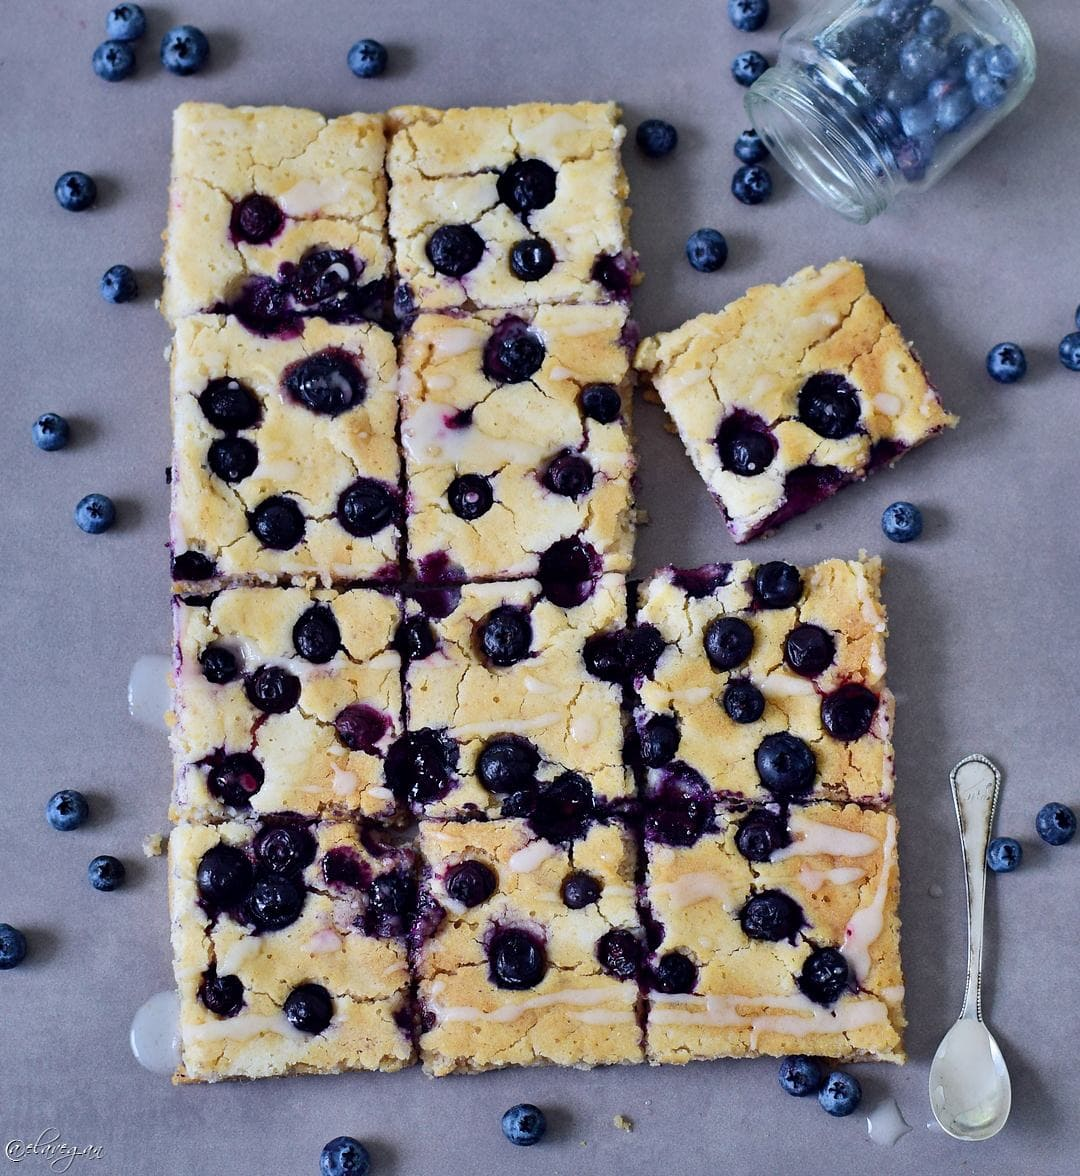 Oven baked blueberry pancakes. My blueberry sheet pancakes are vegan, gluten-free, healthy and low-fat. The recipe is easy to make and family friendly